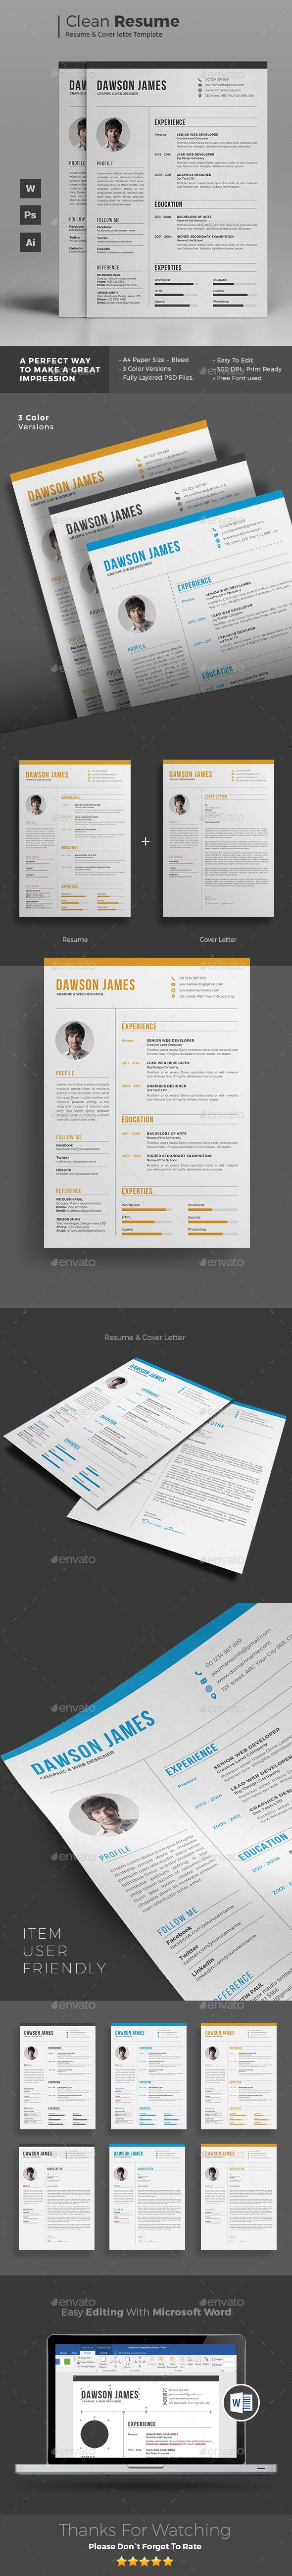 resume free cover letter templatestemplates - Free Cover Letter Template Microsoft Word